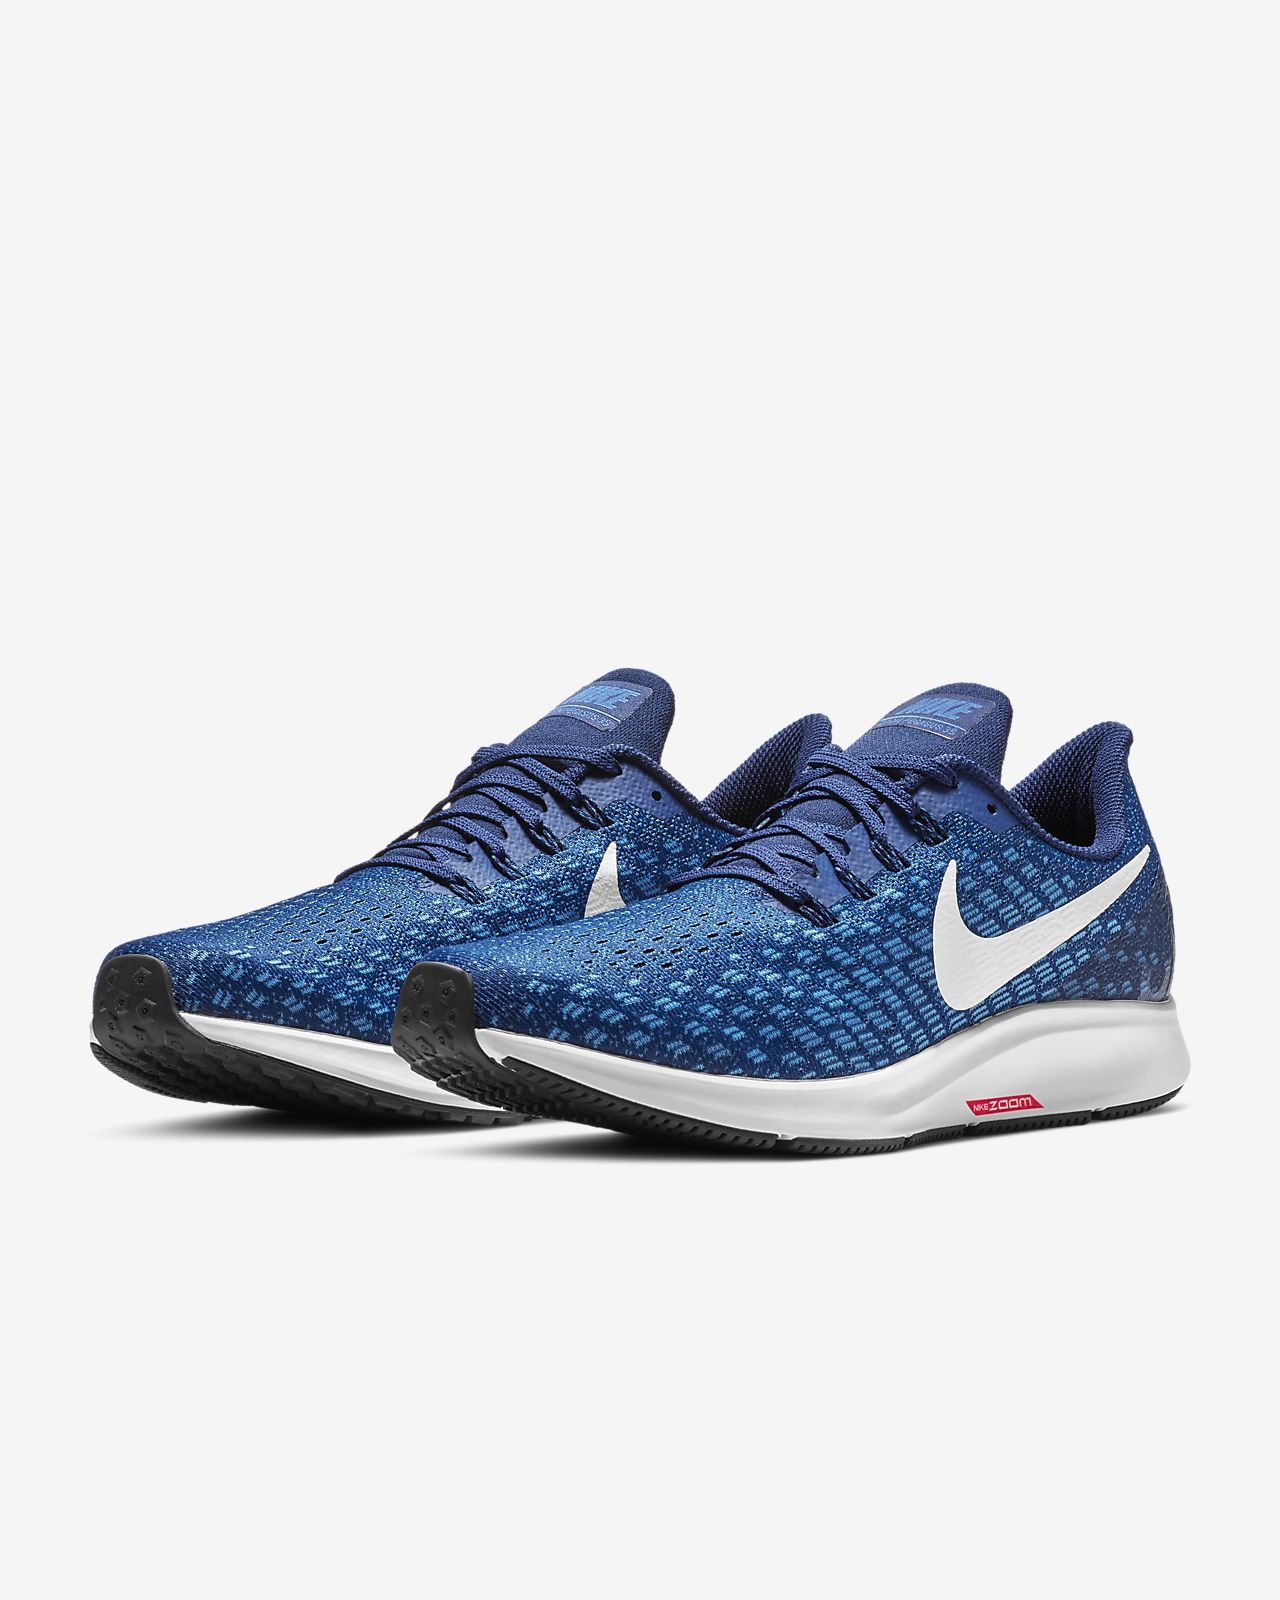 ad32deb5ead44 Nike Air Zoom Pegasus 35 Men s Running Shoe. Nike.com SG